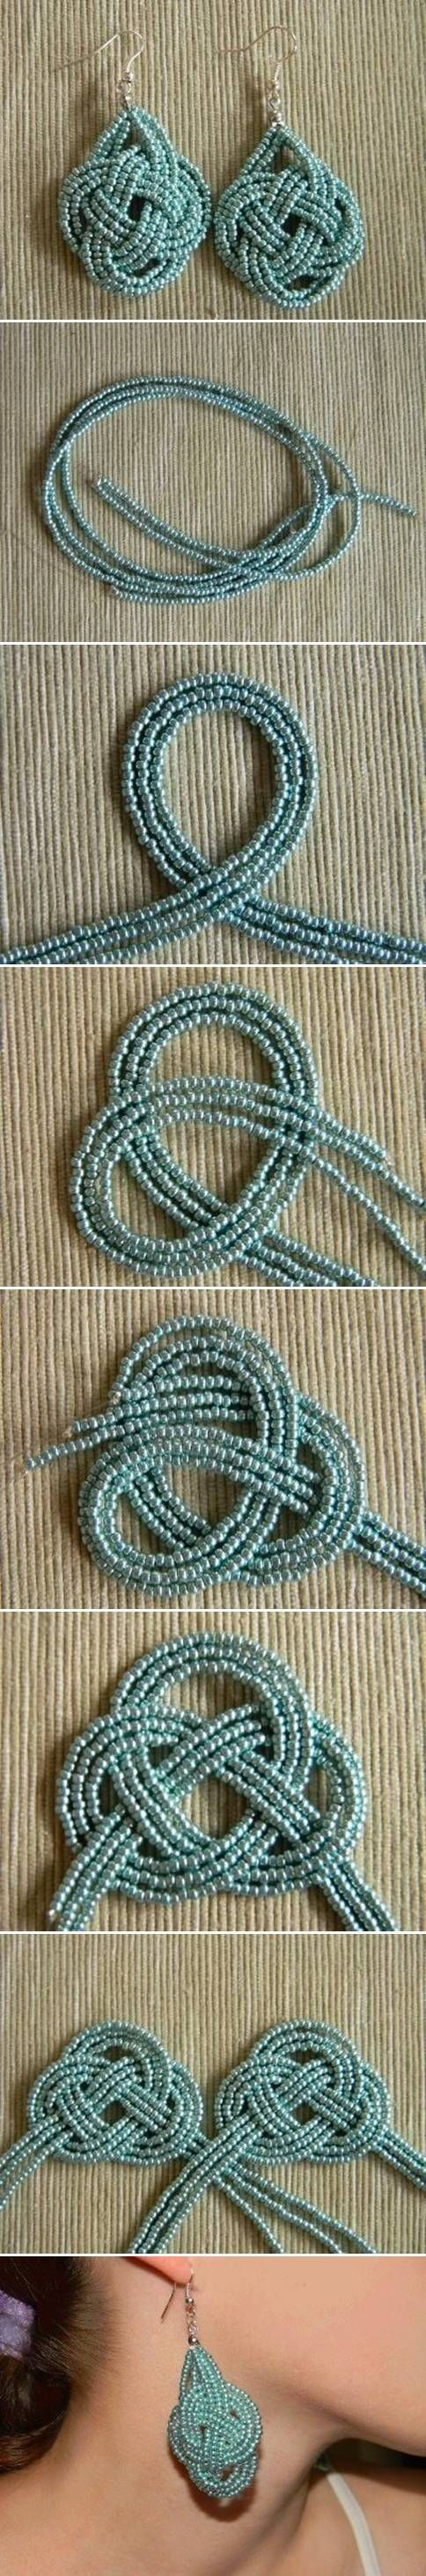 DIY Bead Knot Earrings Pictures, Photos, and Images for Facebook, Tumblr, Pinterest, and Twitter